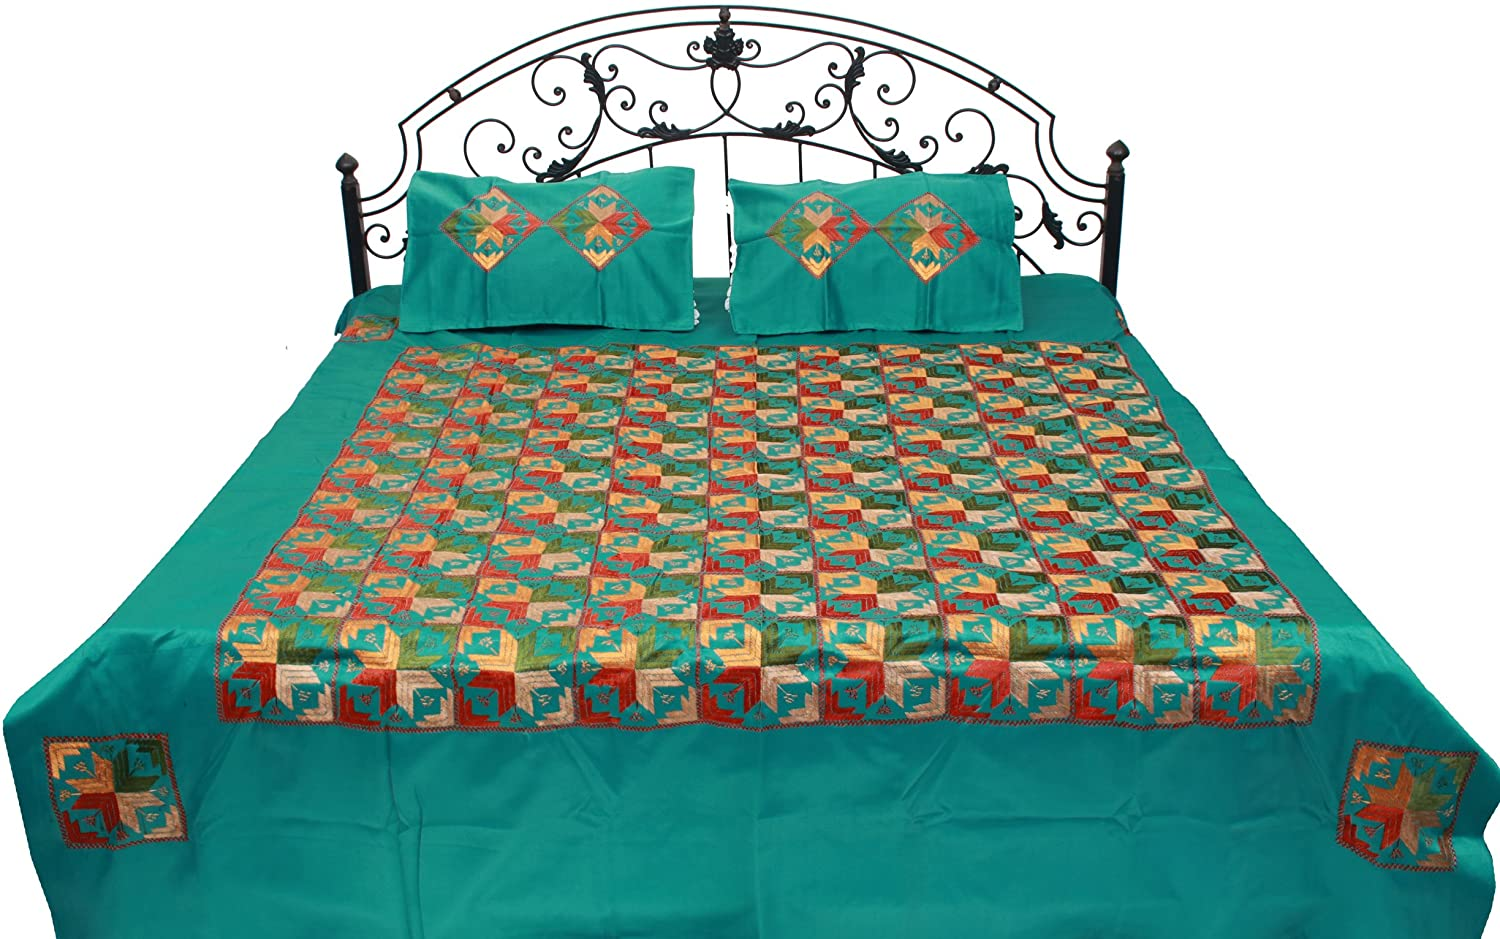 Exotic India Phulkari Embroidered Bedspread from Punjab - Cotton with  Pillow Covers - Color Cadmium Green Color: Amazon.in: Clothing & Accessories